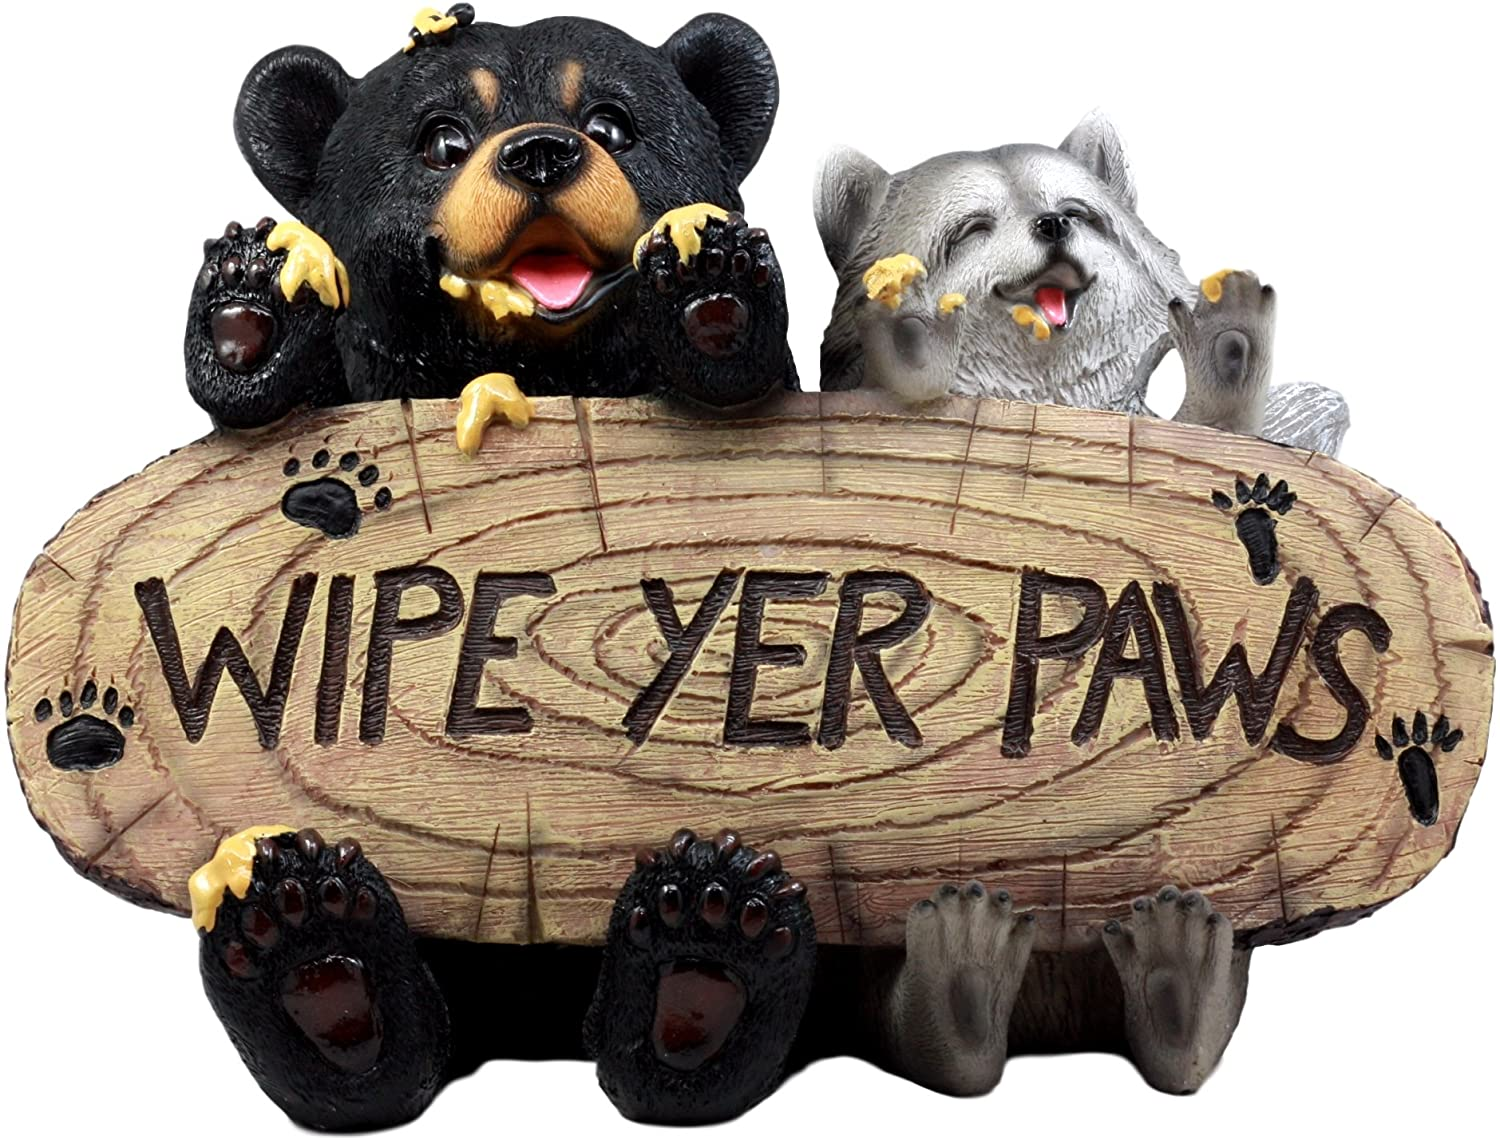 Ebros Gift 13 Long Black Bear and Raccoon Feasting On Honey Welcome Statue Wipe Your Paws Guest Greeter Cleanup Reminder Decorative Figurine Decor